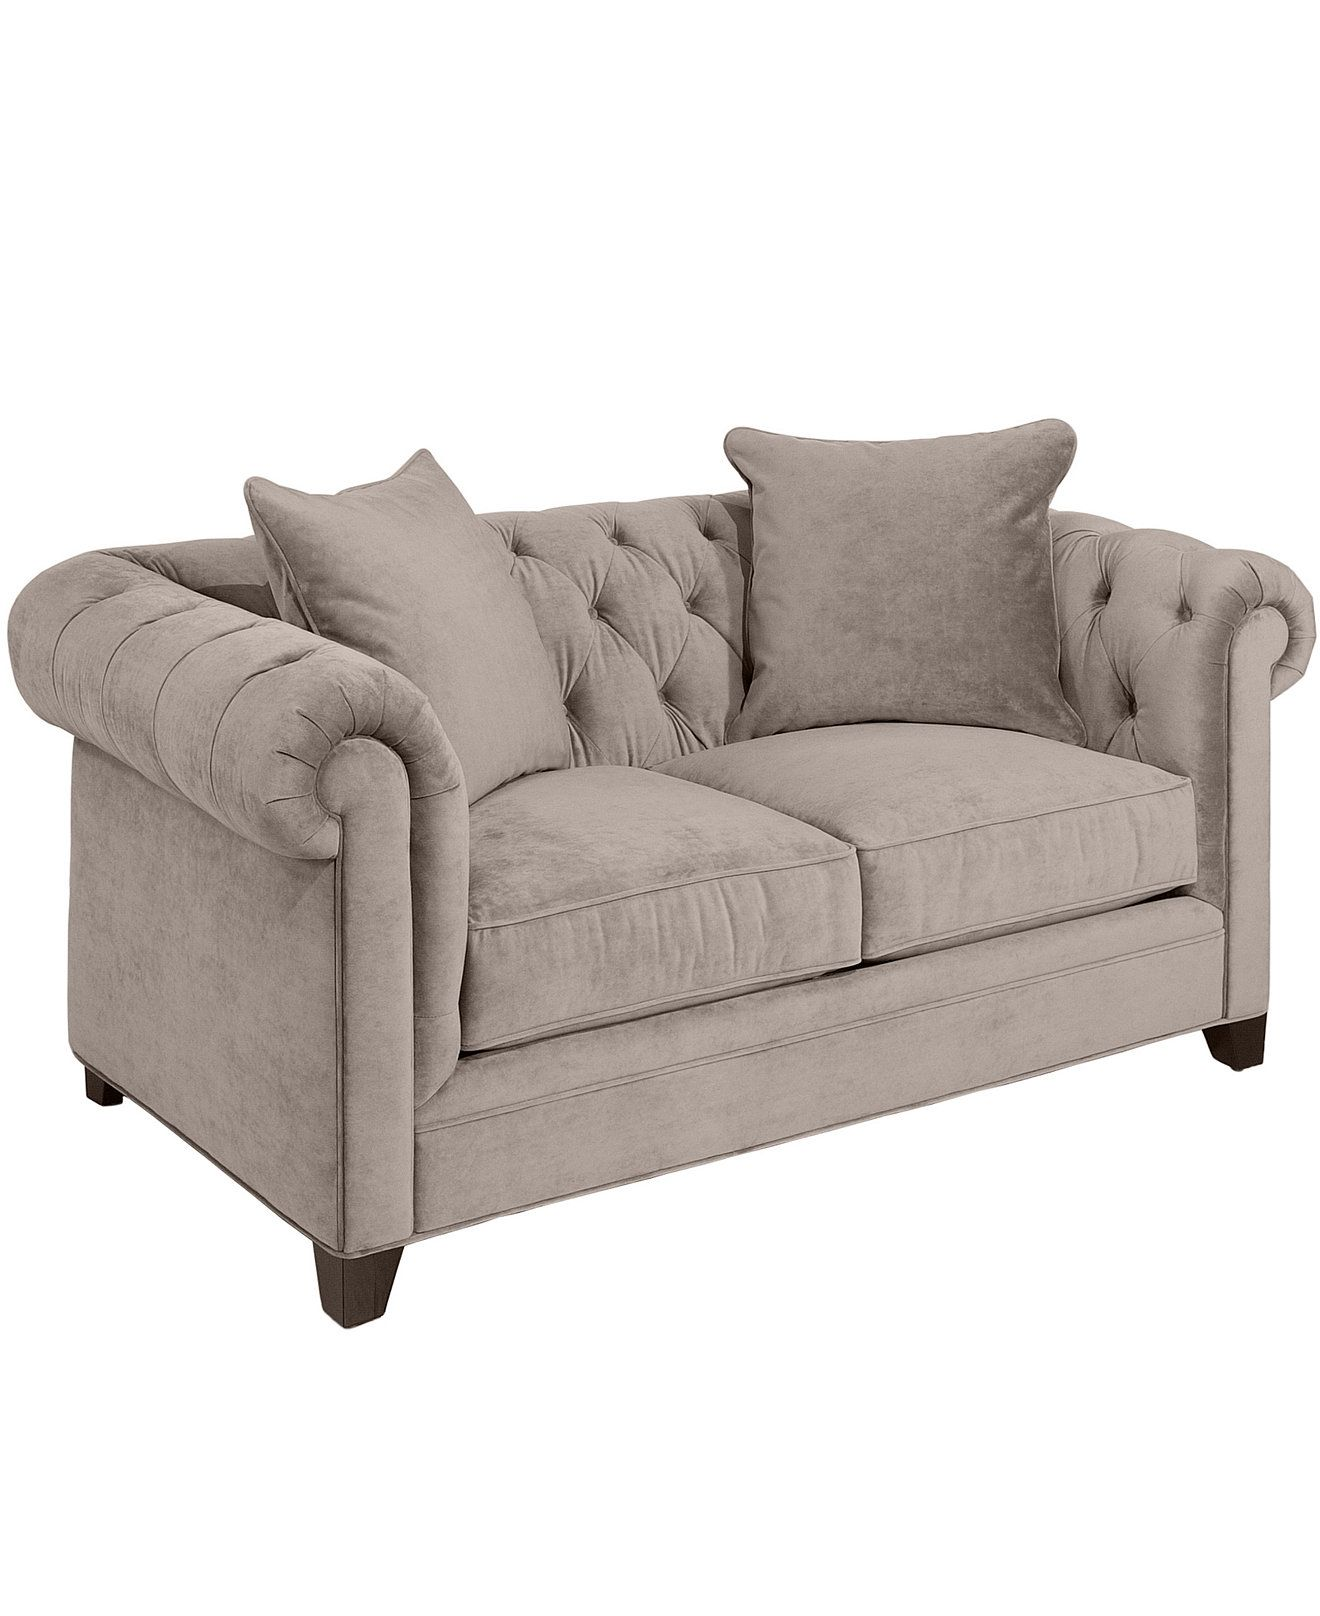 Saybridge 68 Loveseat Created For Macy S Sofas Couch